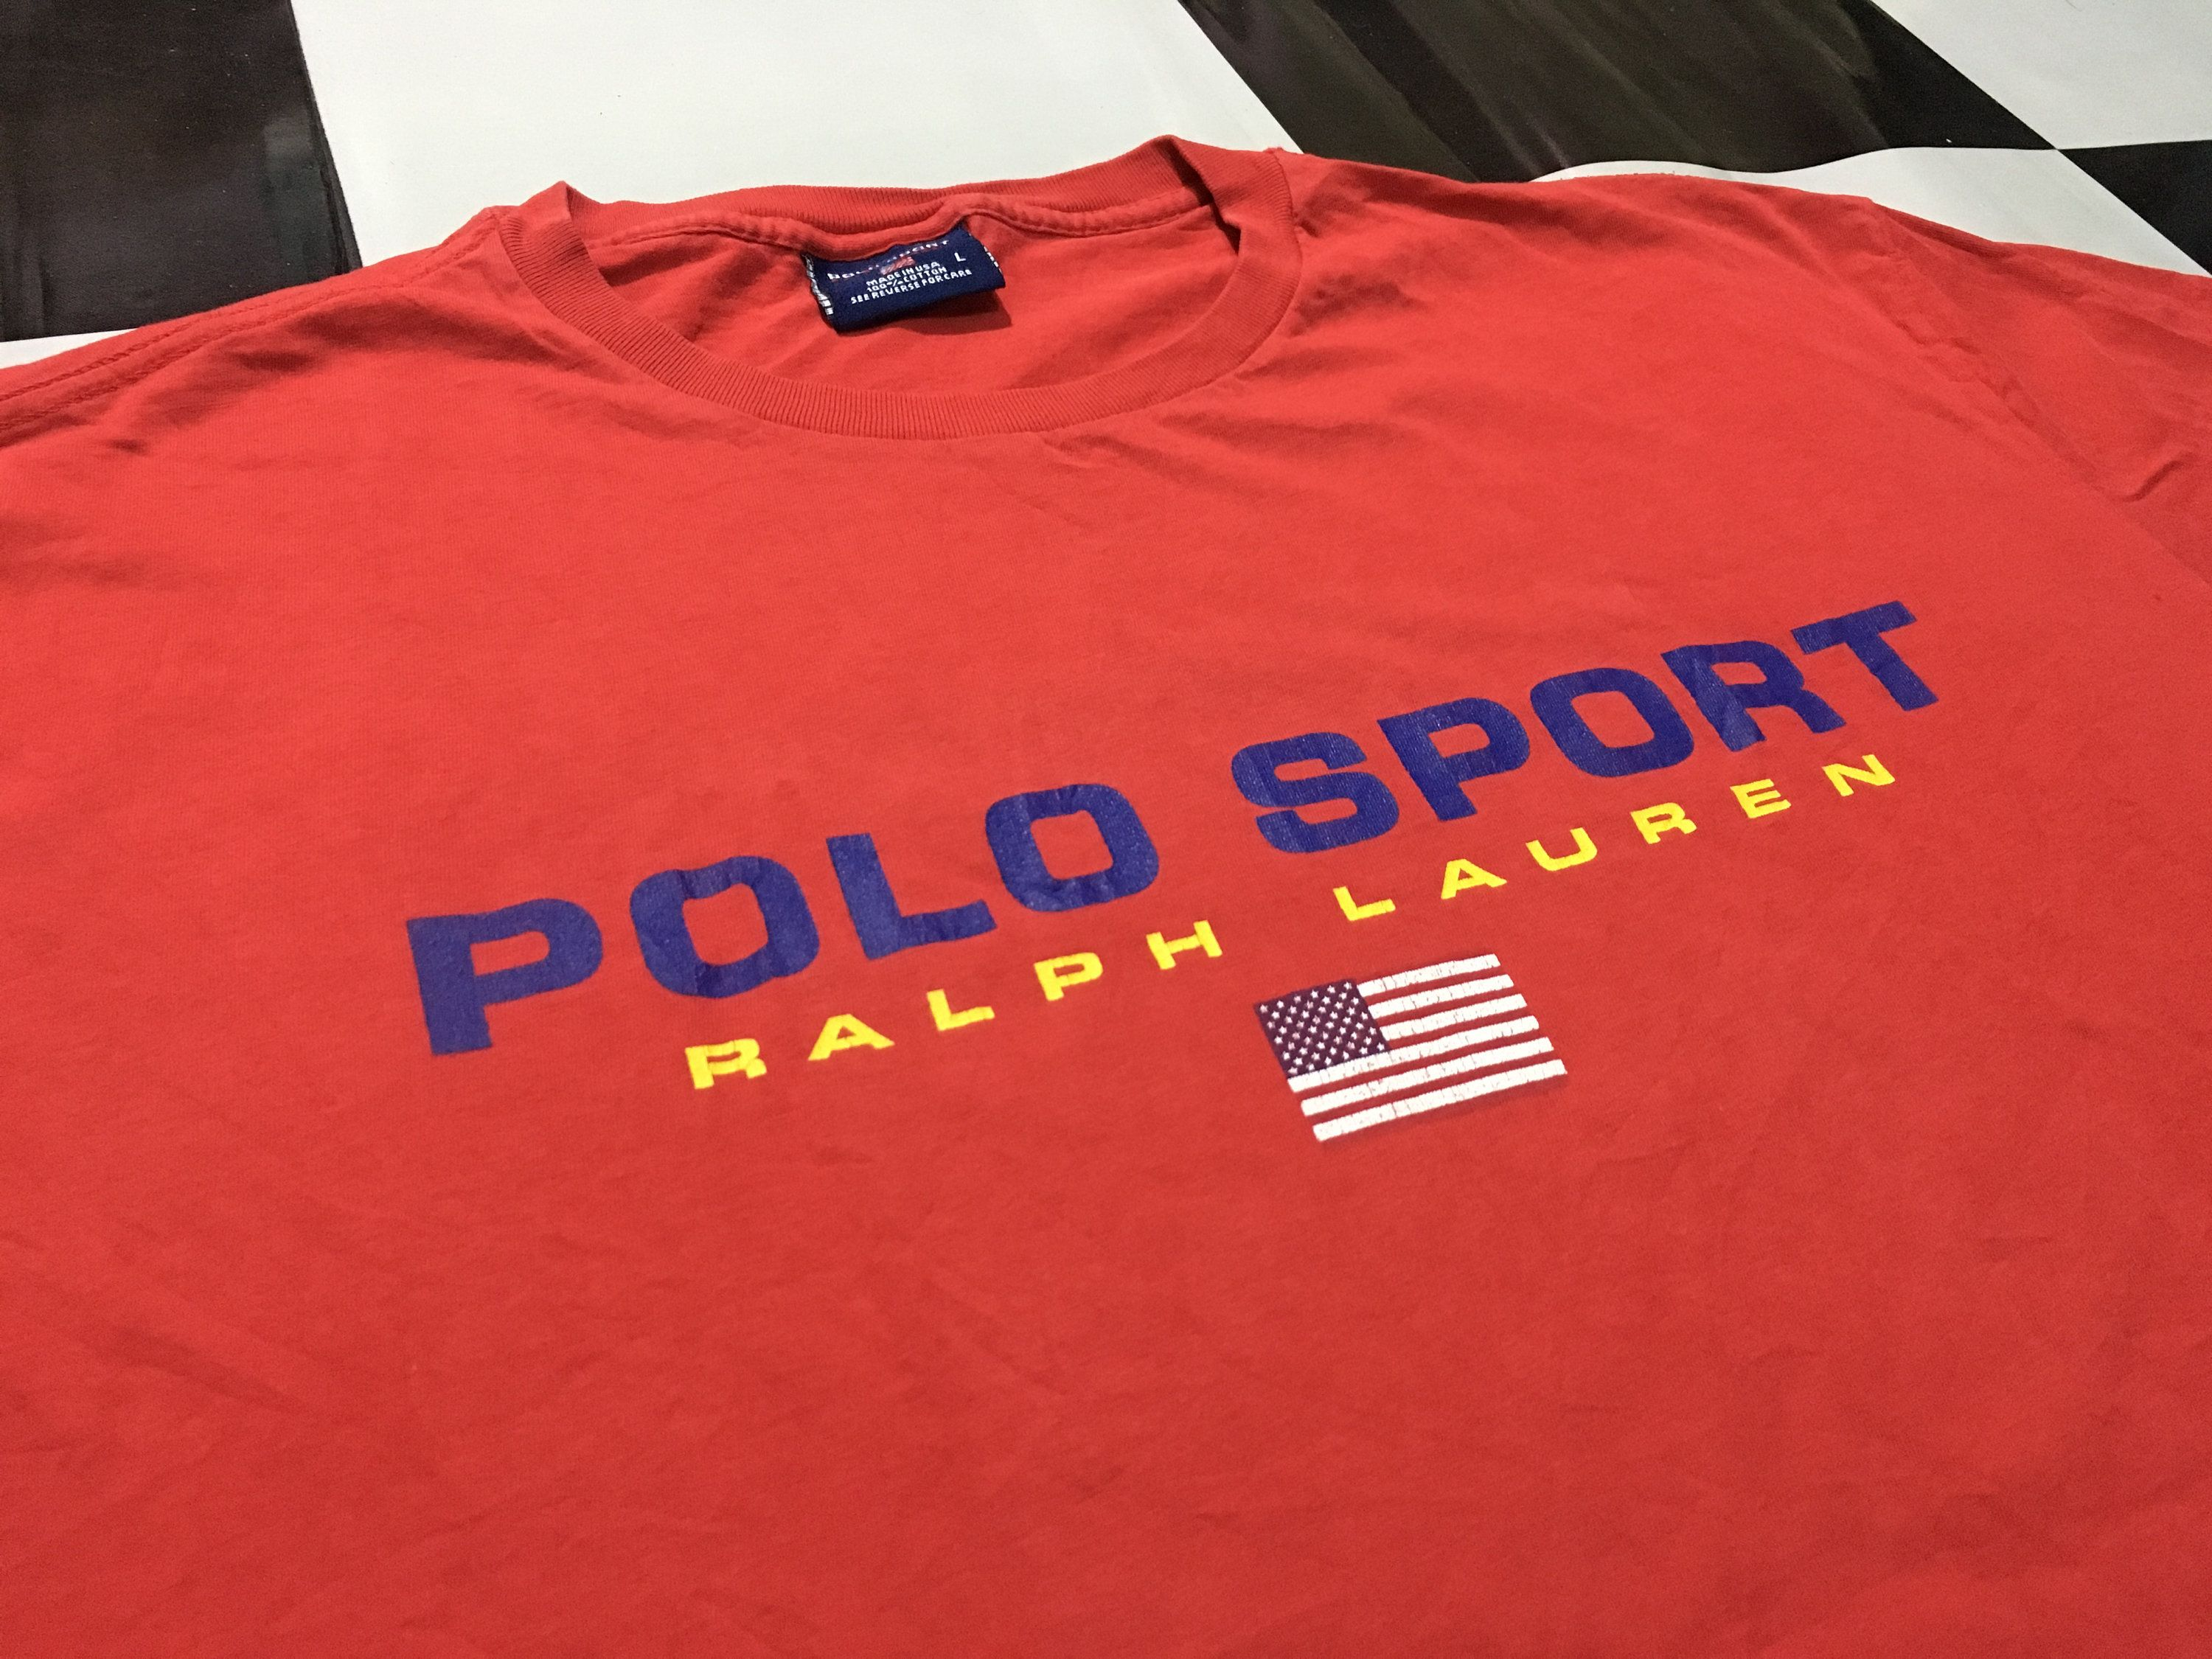 4008a0063 Vintage Polo sport shirt big logo spell out flag logo Red Size L Good  condition Made in usa Polo sport ralph lauren by AlivevintageShop on Etsy